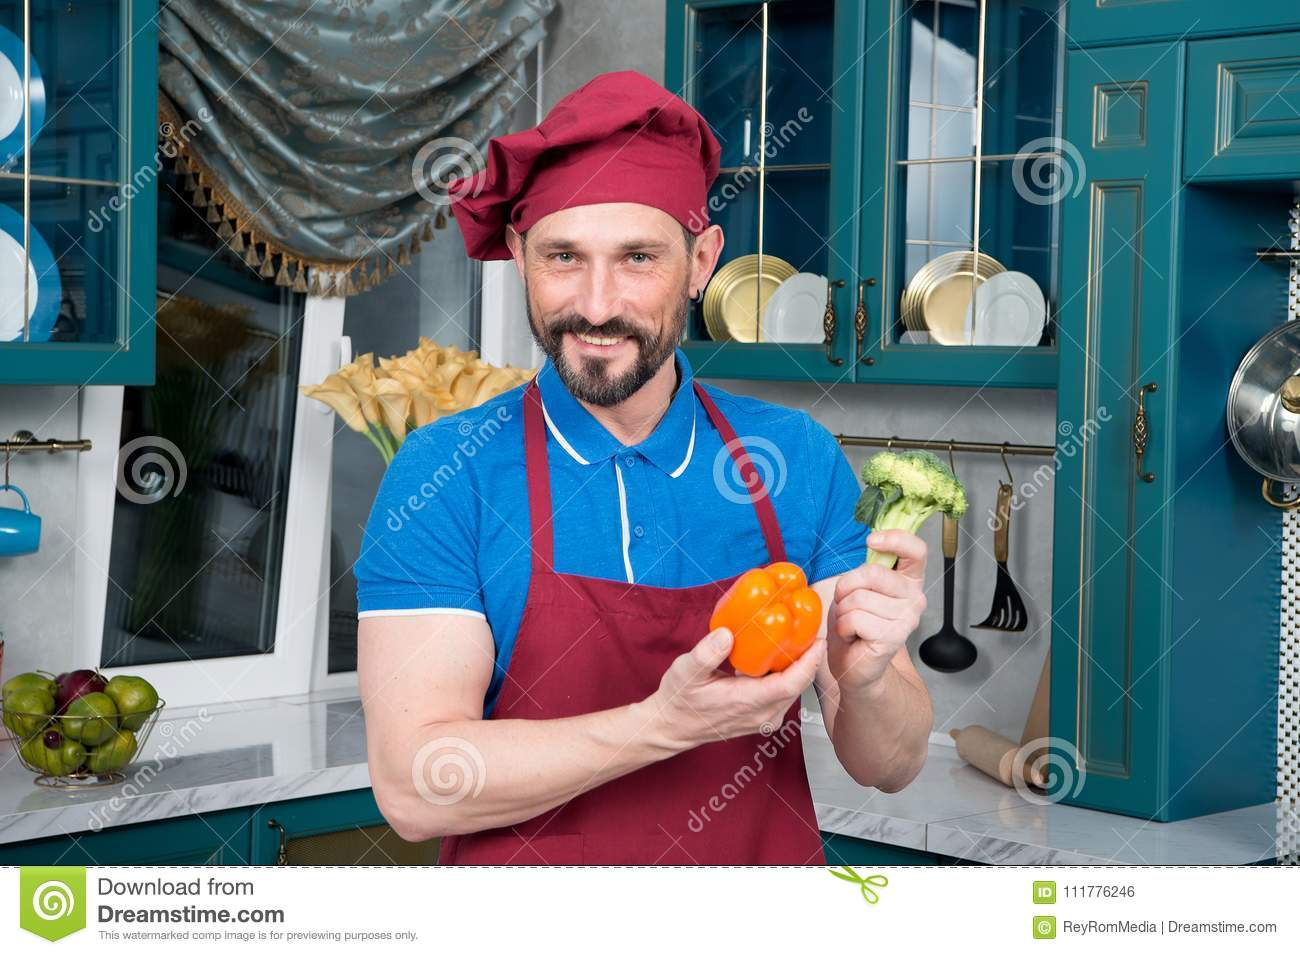 Paprika and broccoli in man hands. Smiled chef with vegetables in his hands. Portrait of bearded guy at kitchen